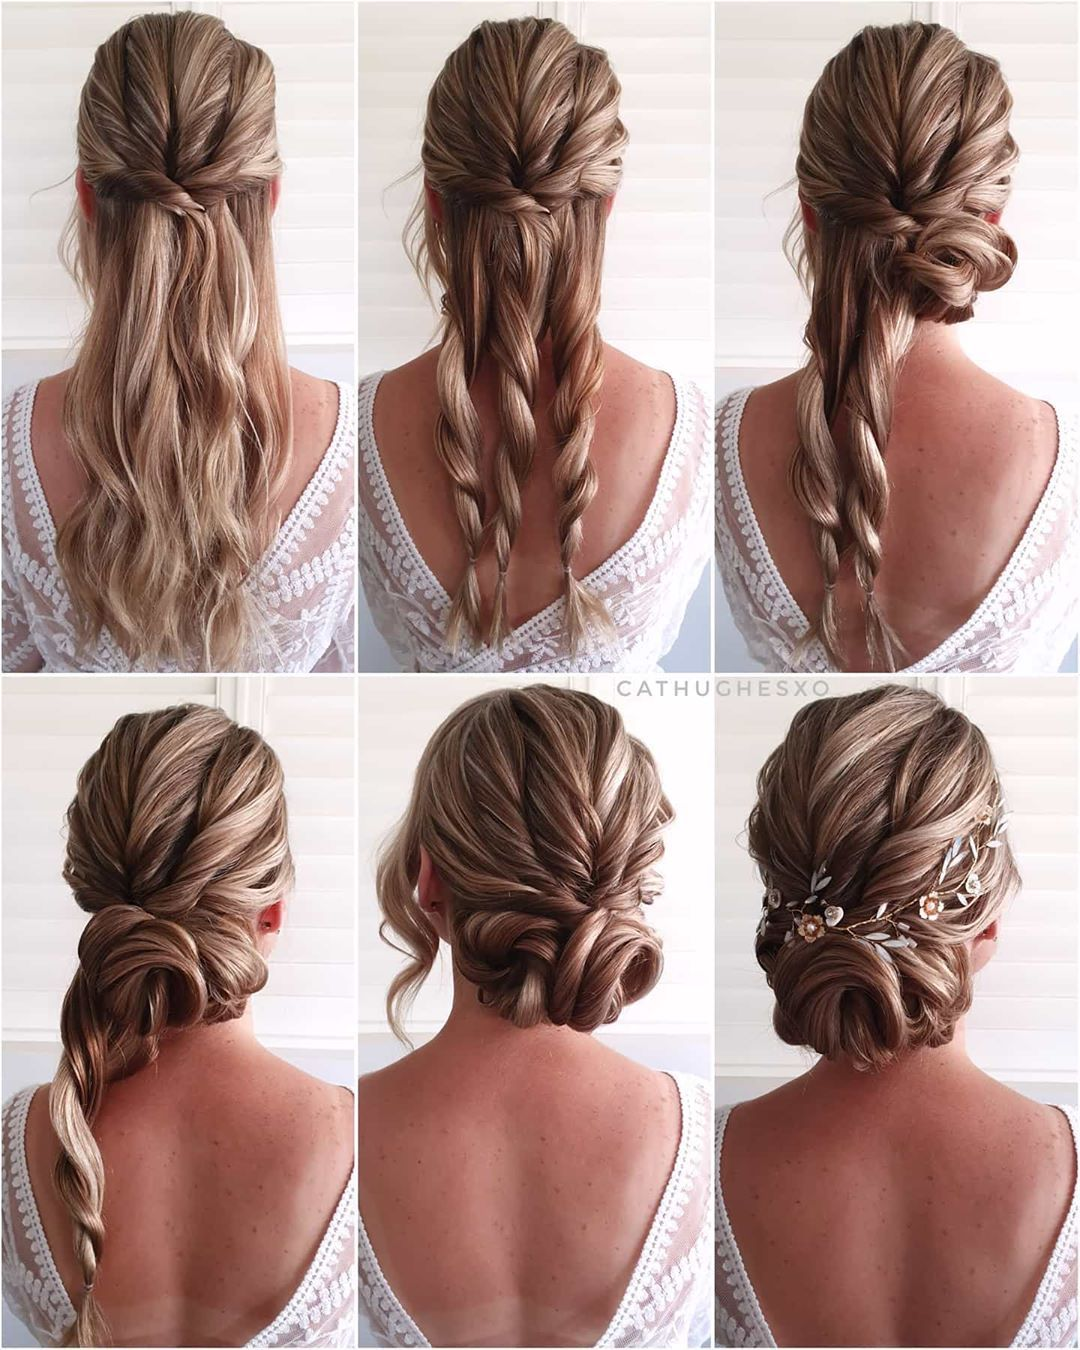 Simple And Pretty Diy Updo Hairstyle Tutorials For Wedding Guest Boho In 2020 Updo Hairstyles Tutorials Wedding Hairstyles Tutorial Guest Hair